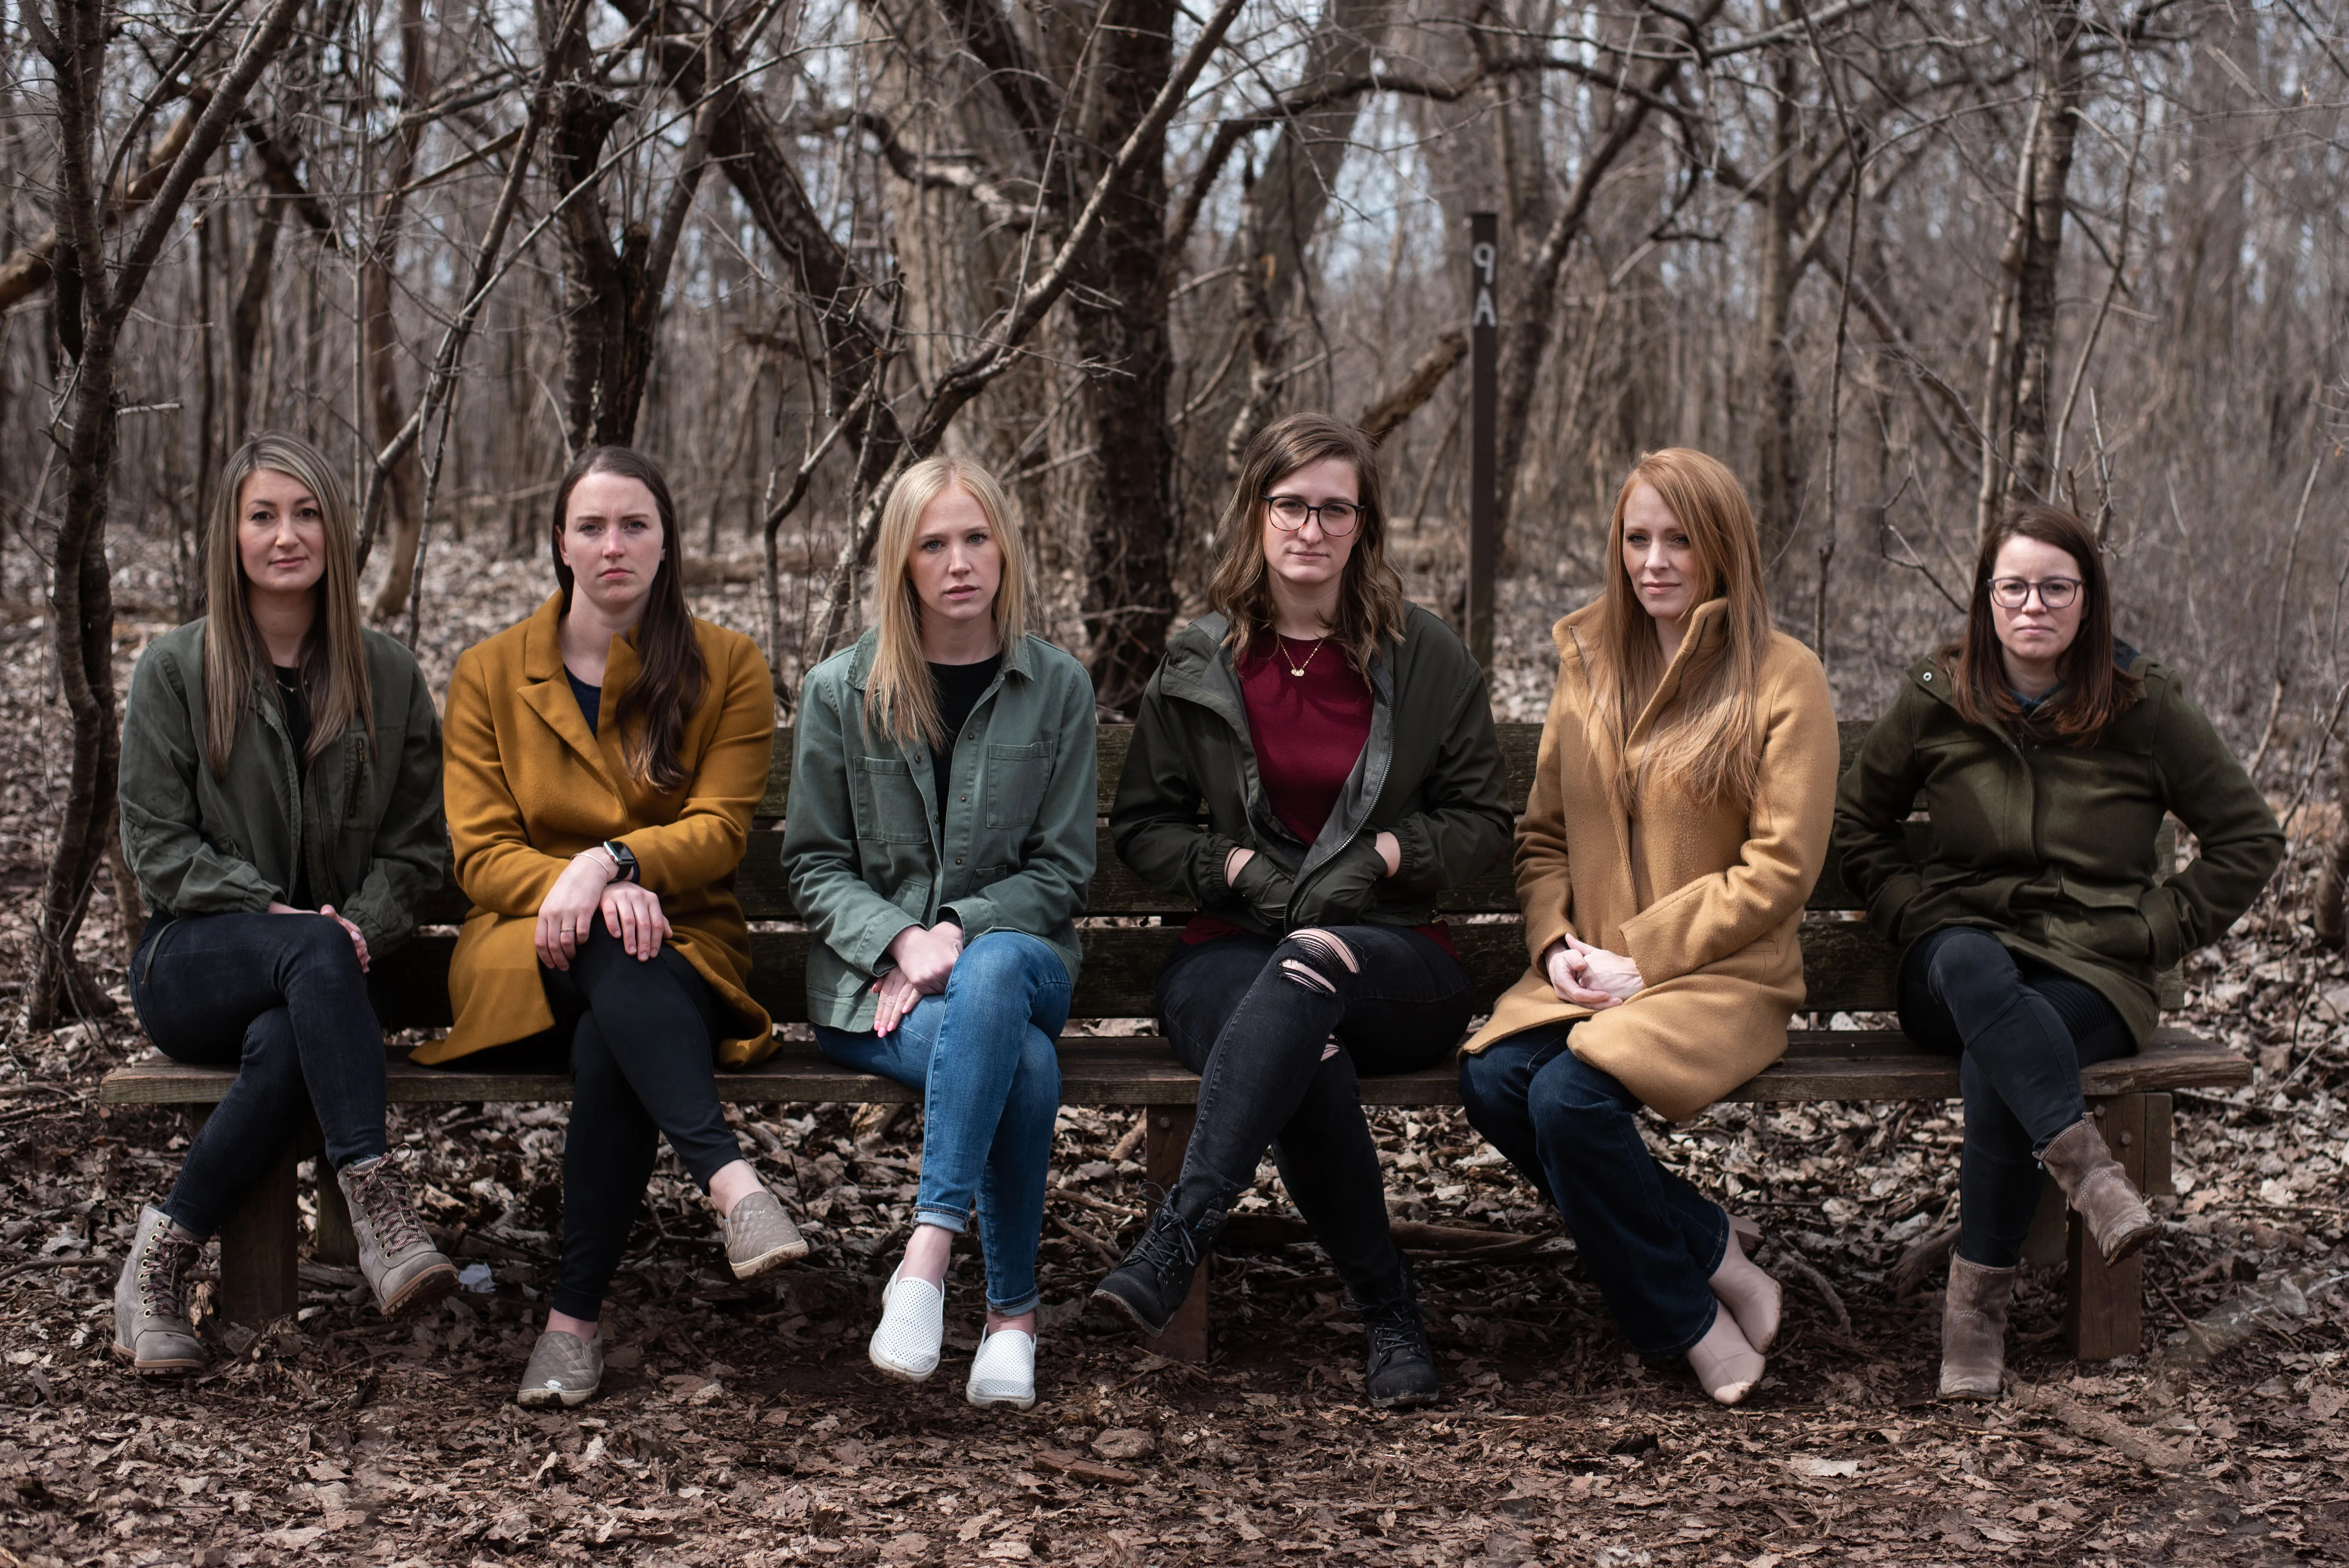 More than 16 women across the country have alleged Wayne Aarum's physical and verbal behavior toward them at either The Chapel or Circle C Ranch from the late 1990s onward was inappropriate and abusive. Six of them were photographed together in Buffalo on Saturday, April 3, 2021. From left are Ashley Scibilia, Rachel Horvath, Jessica Spiesz, Carolyn McDonald, Joy McCullough and Michelle Poulsen.